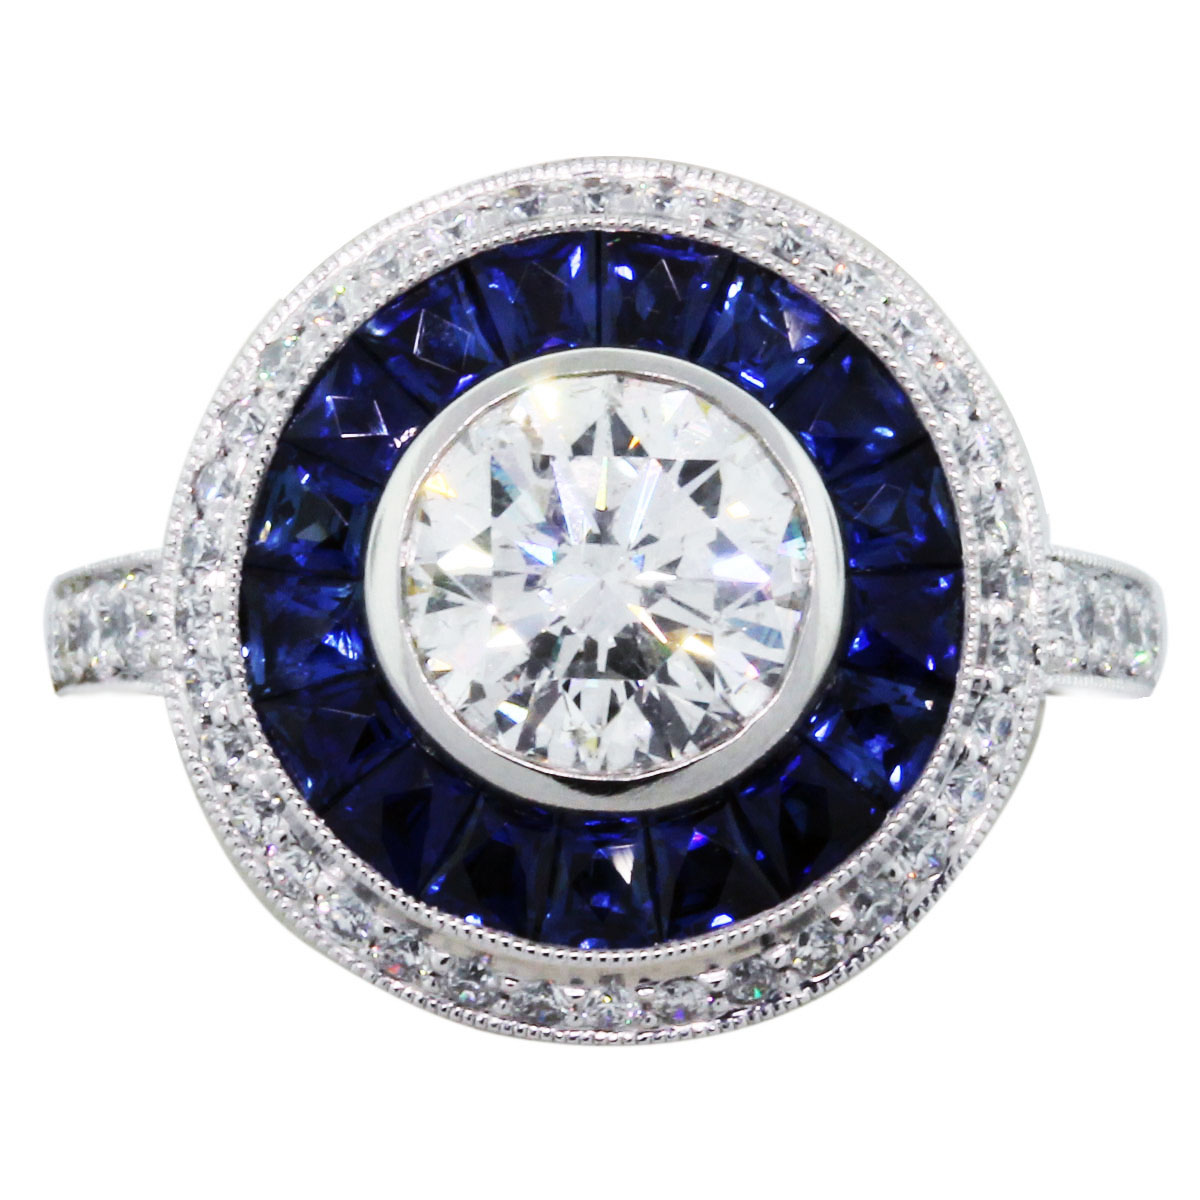 1 50 Ct Round Diamond Halo Style Engagement Ring with Sapphires